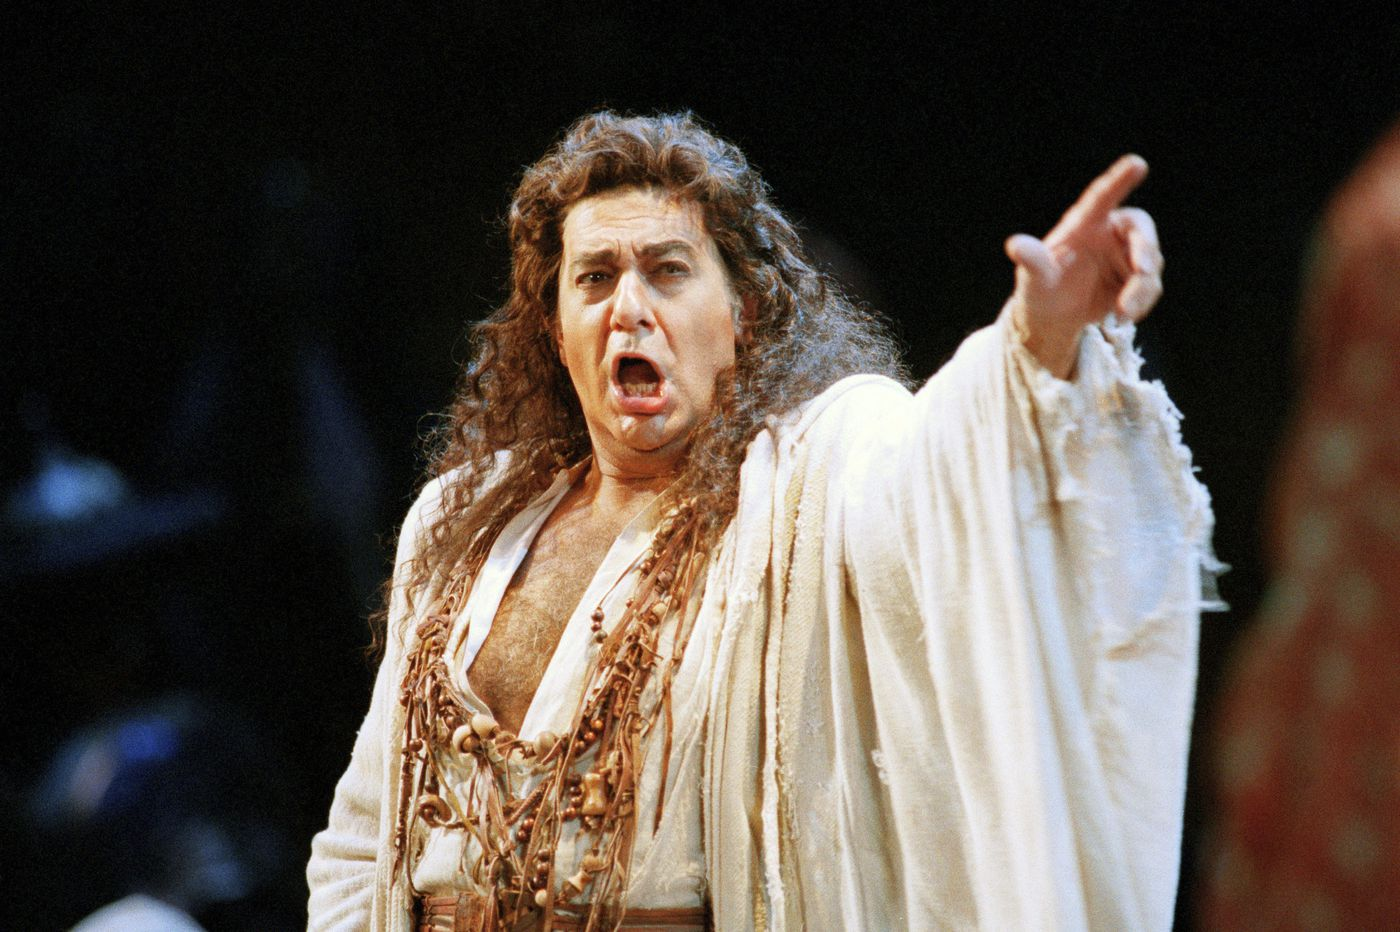 Metropolitan Opera and more major players respond to allegations against Plácido Domingo